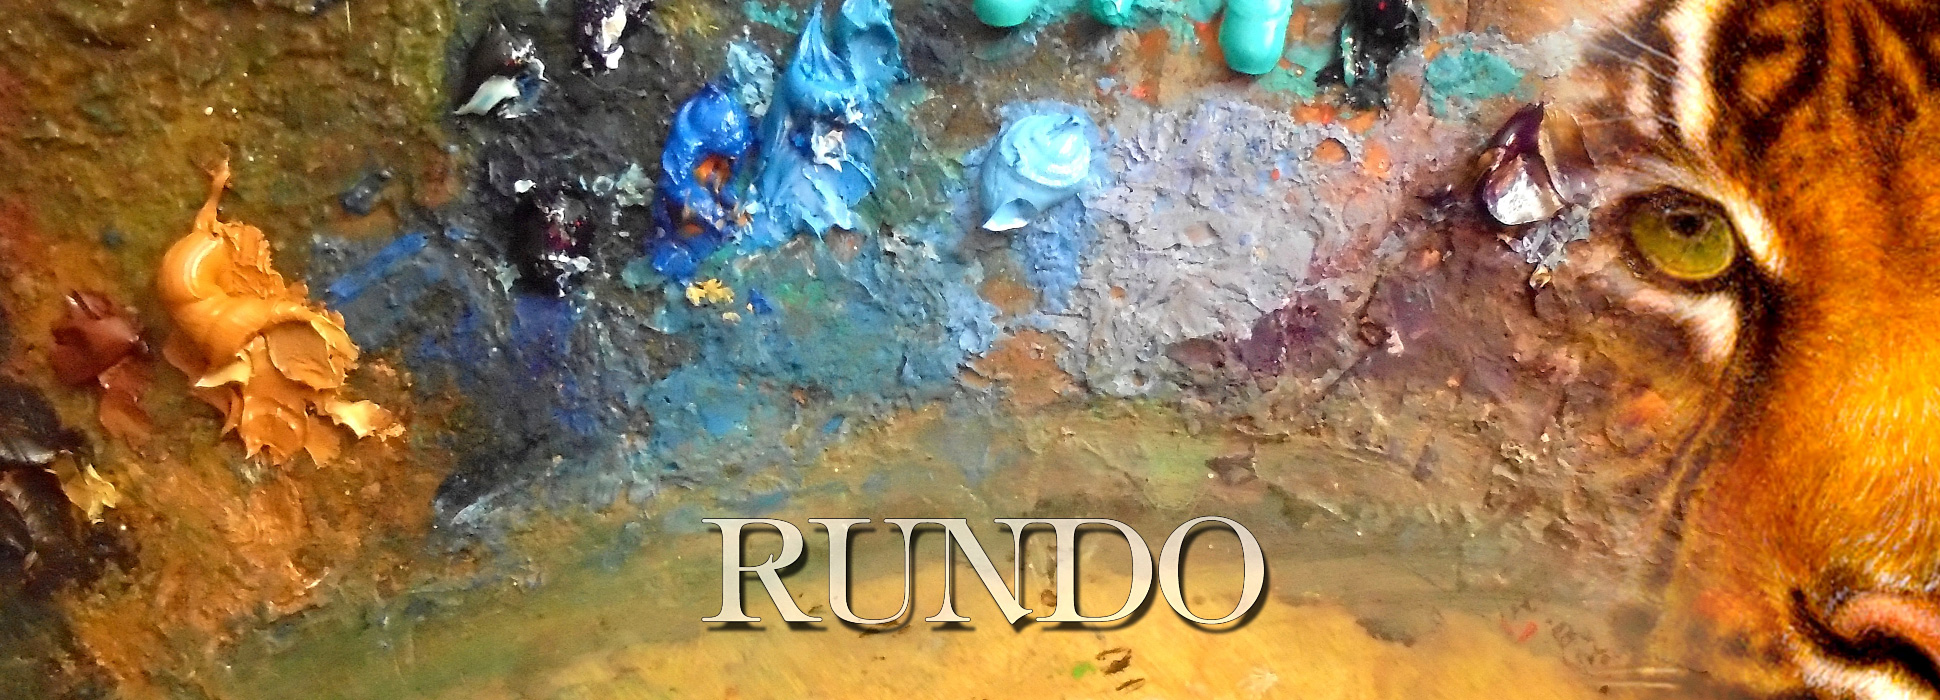 Ron Rundo Wall Sculpture